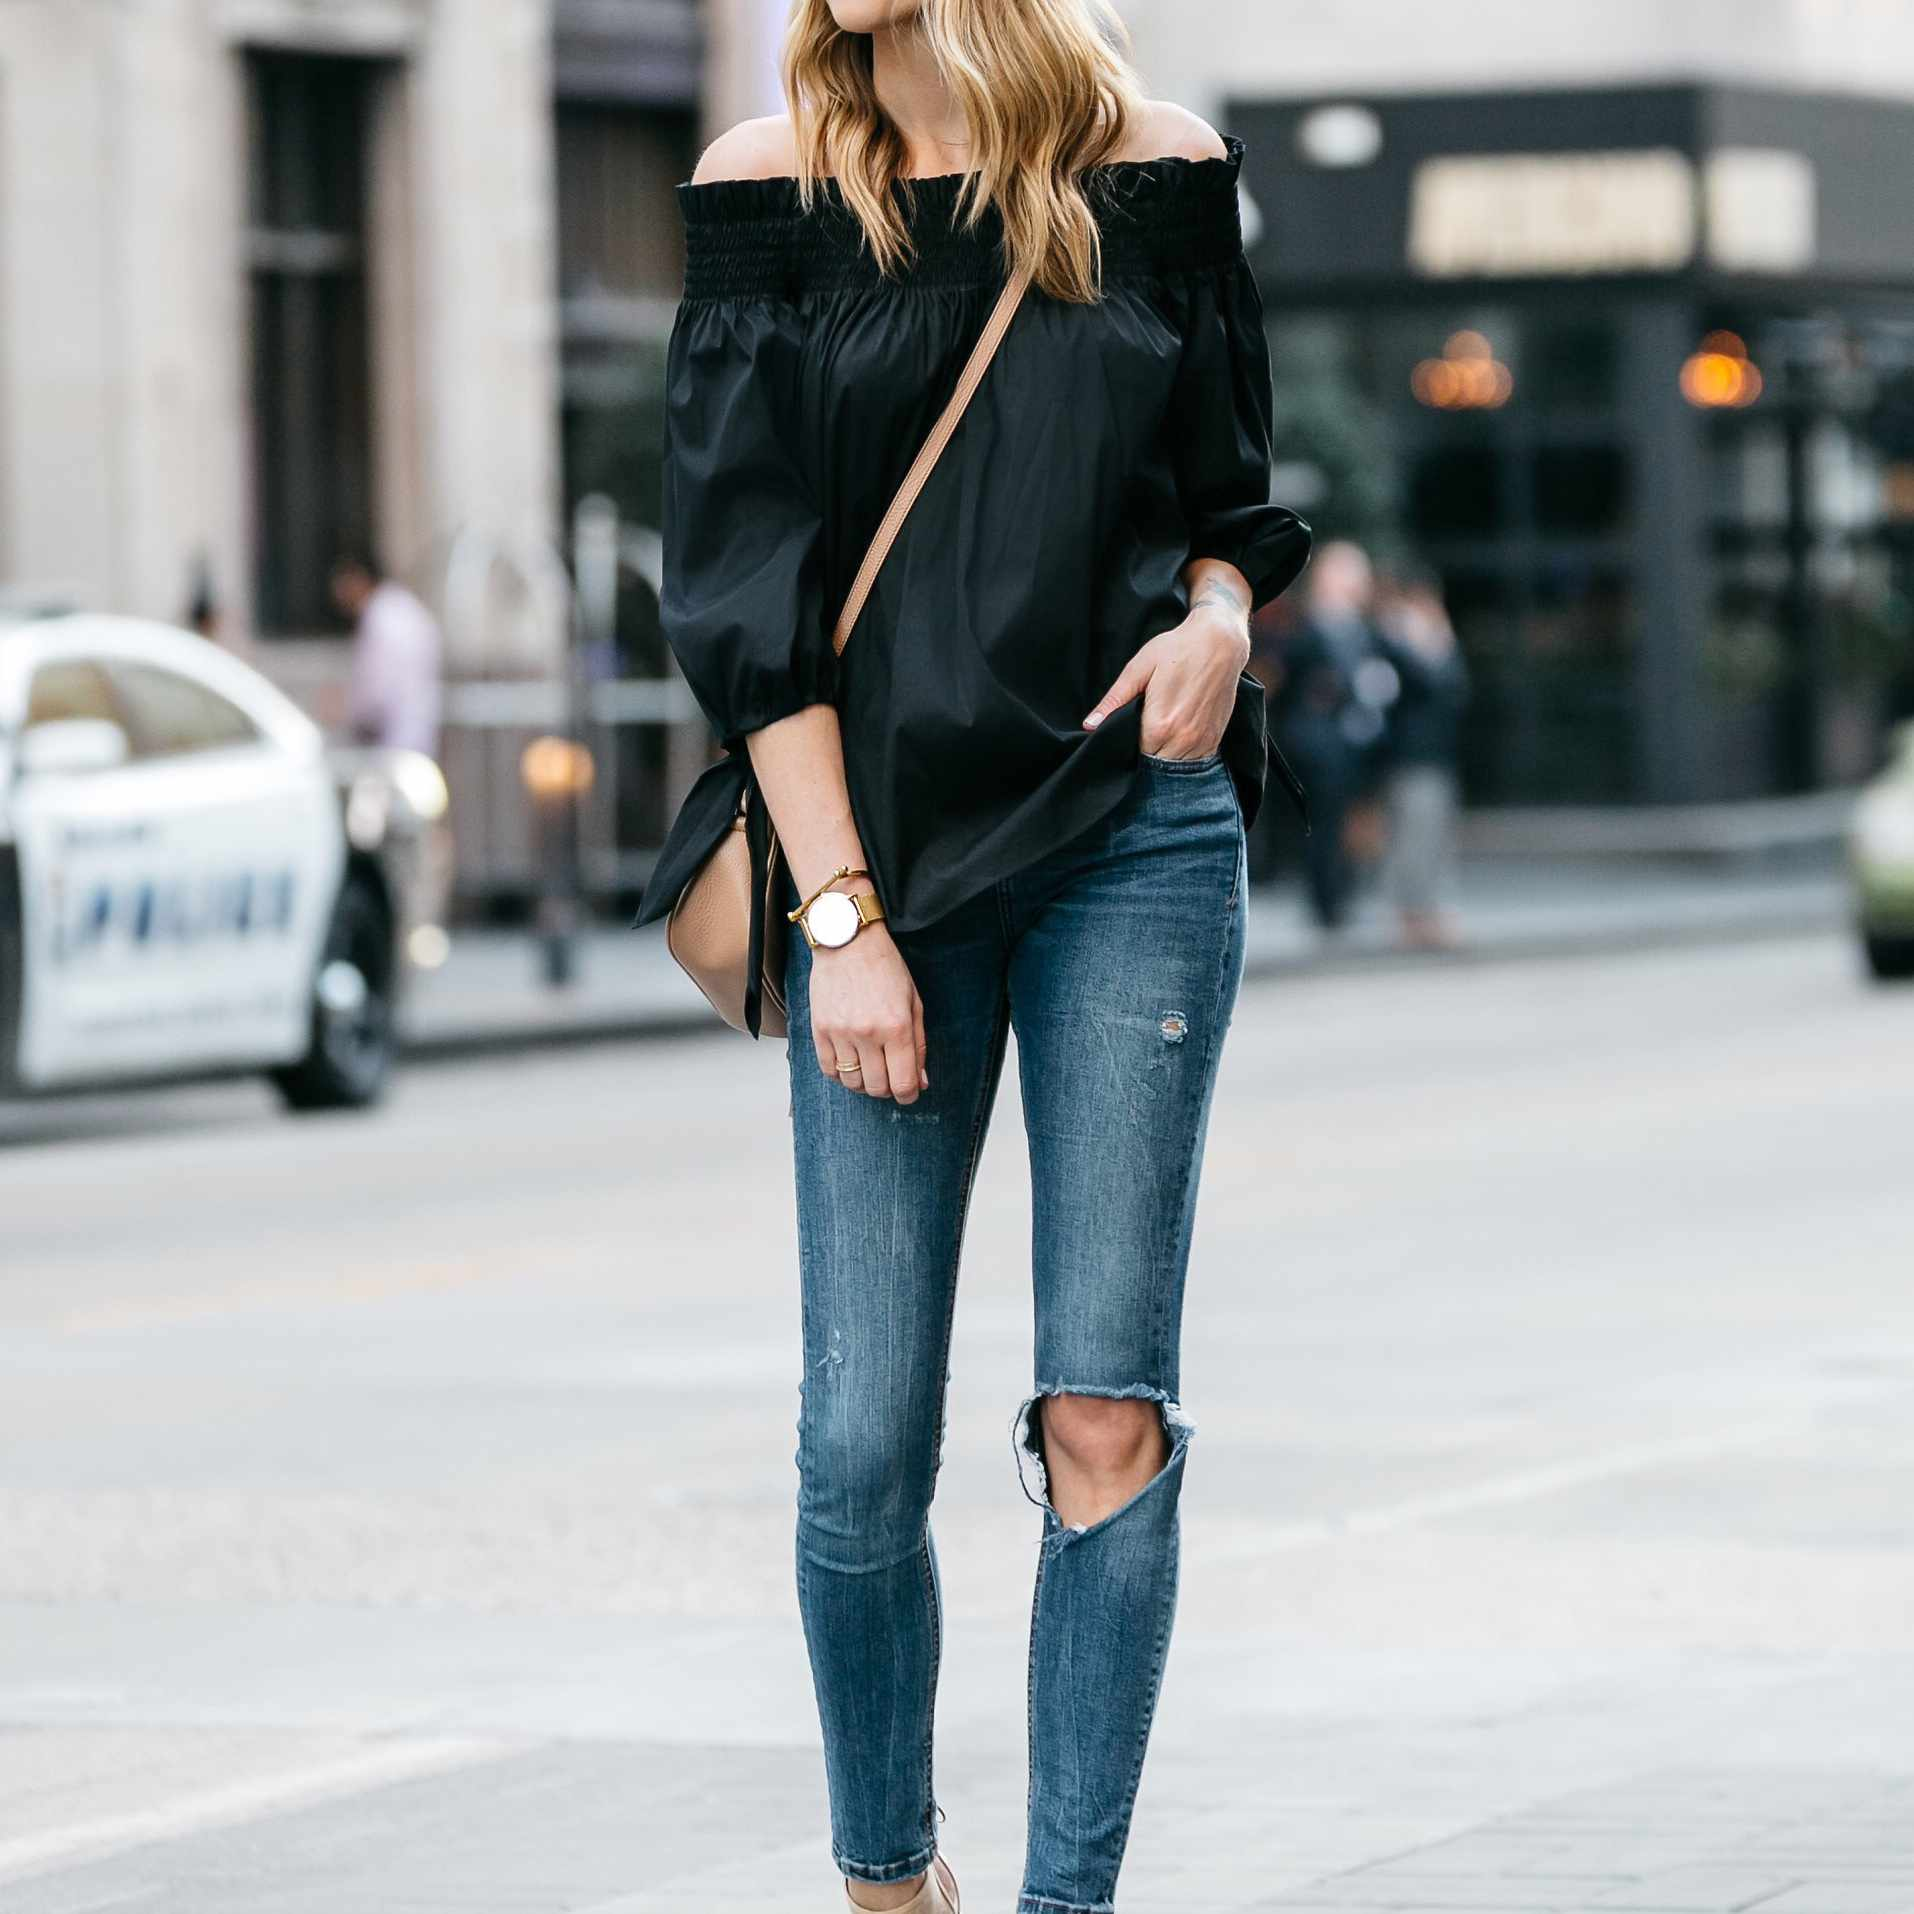 23 Cute Dinner Date Outfit Ideas